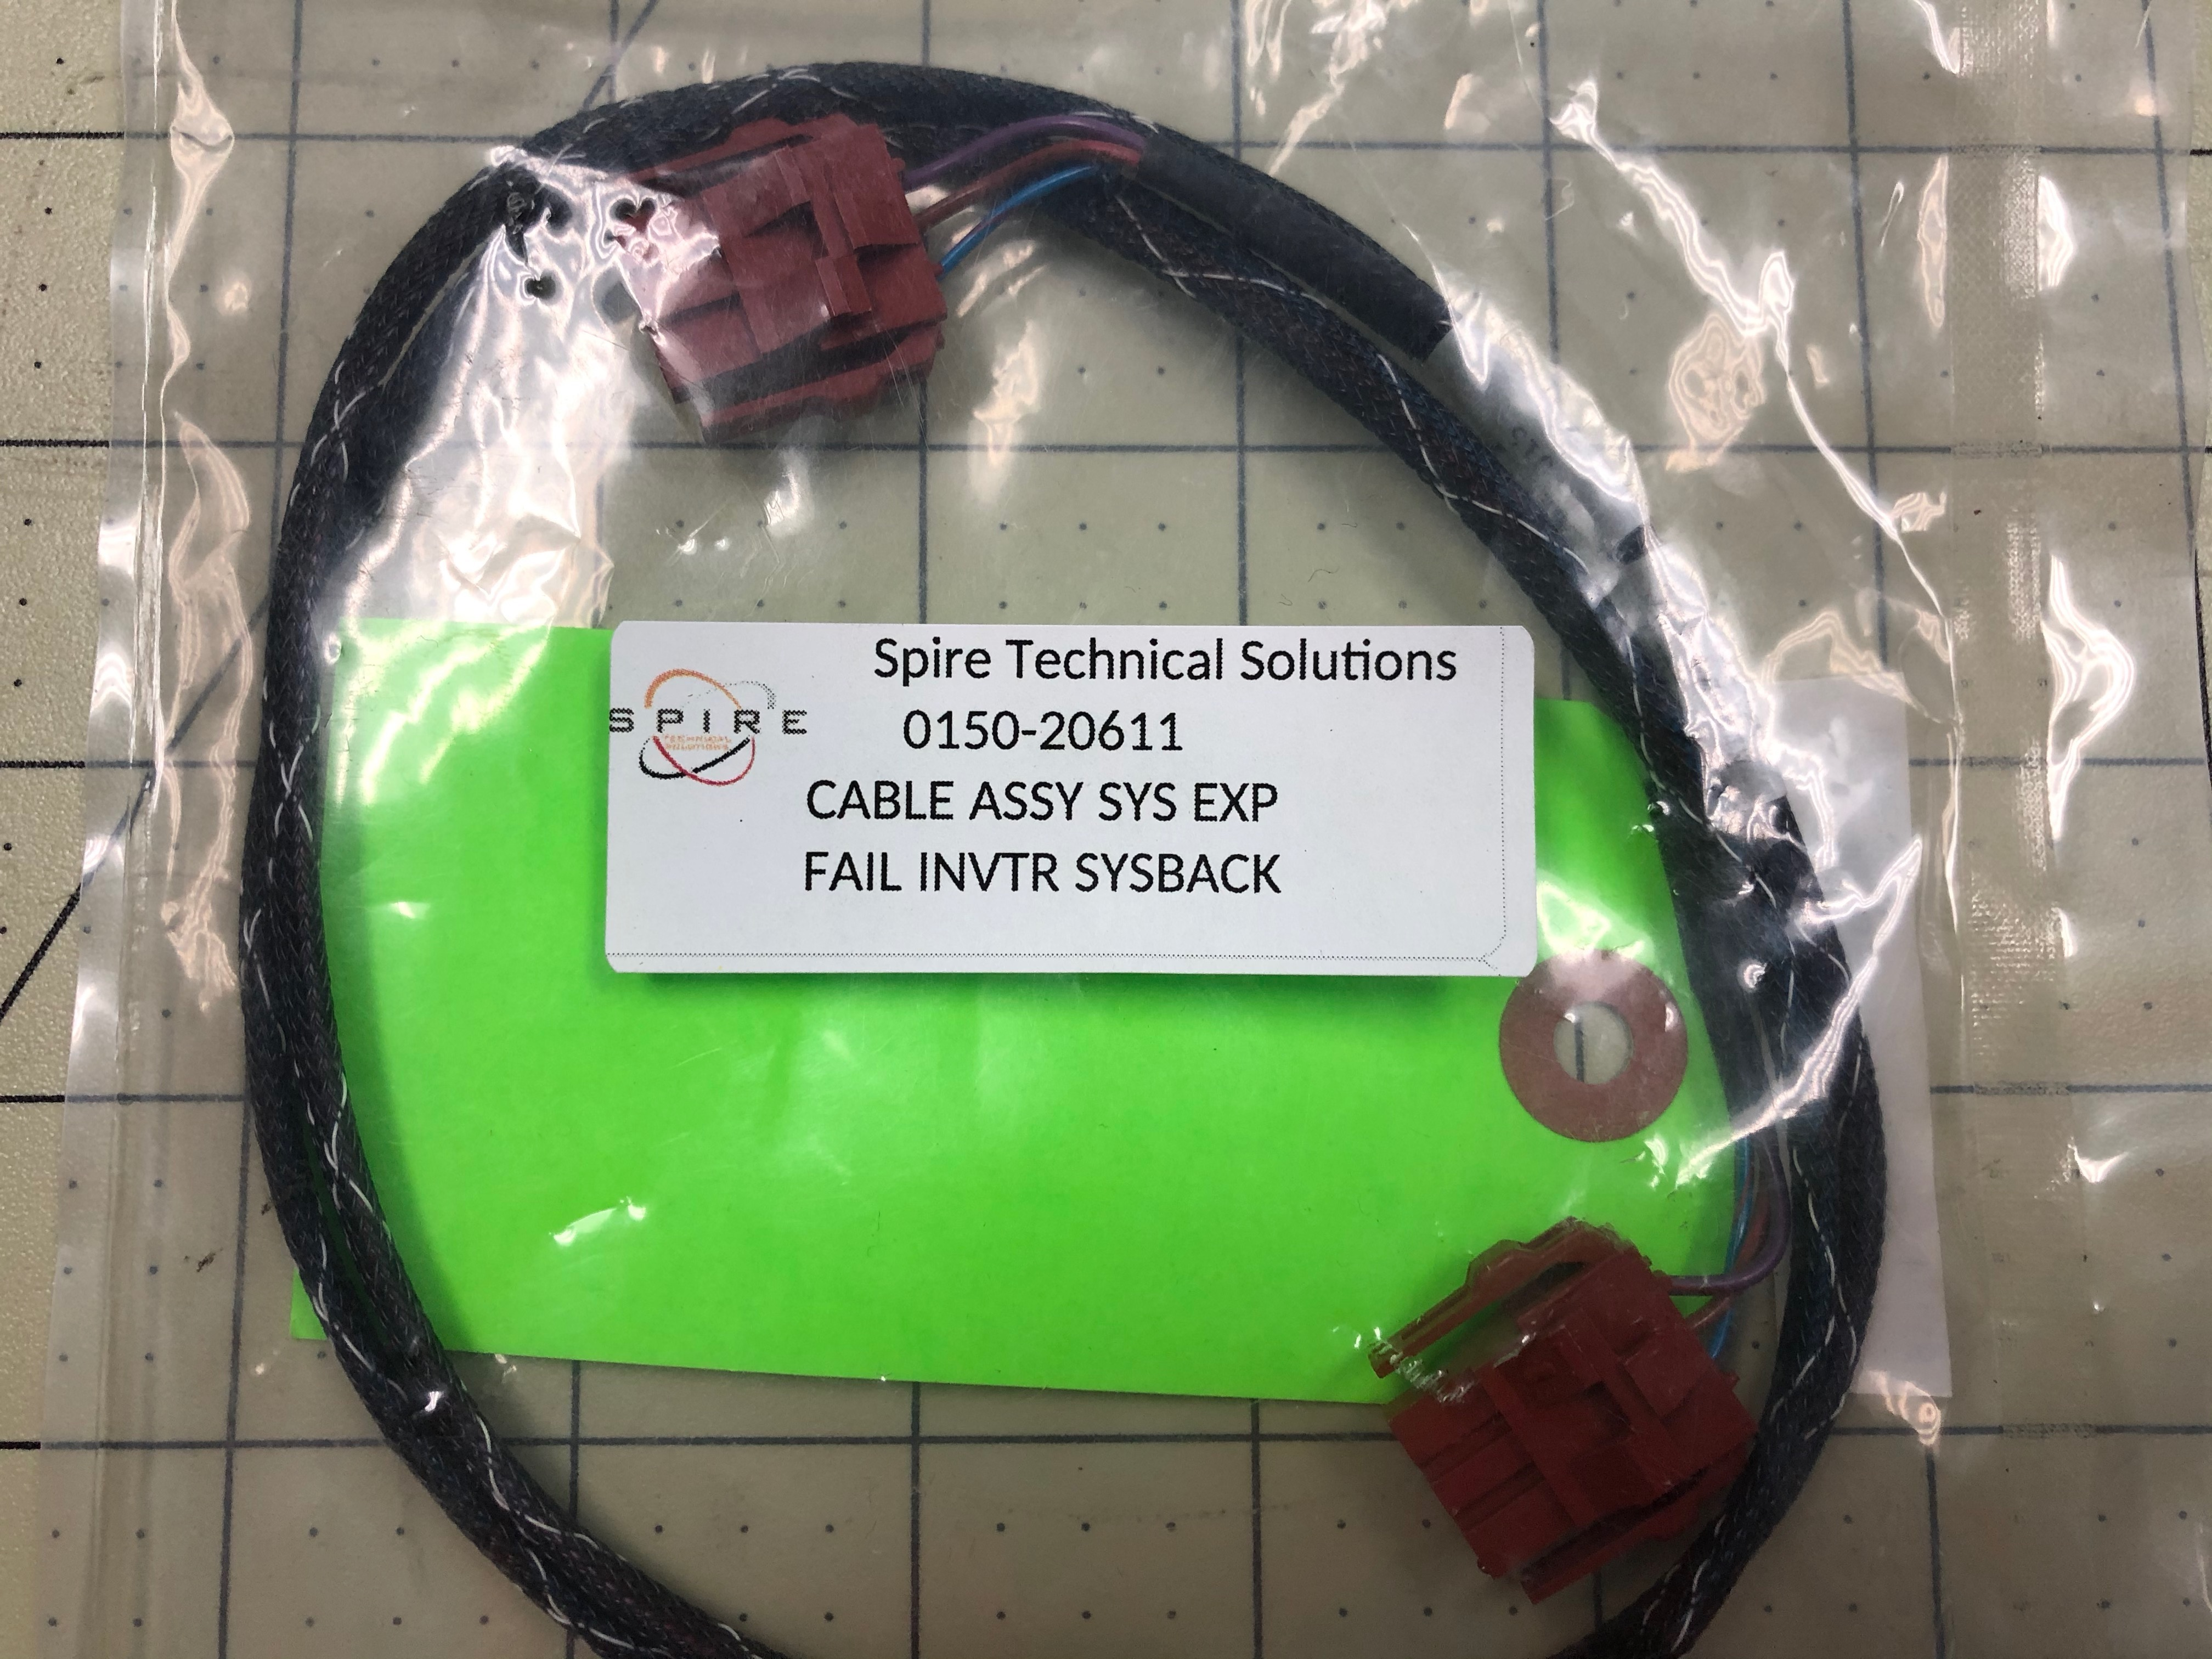 CABLE ASSY SYS EXP FAIL INVTR SYSBACK